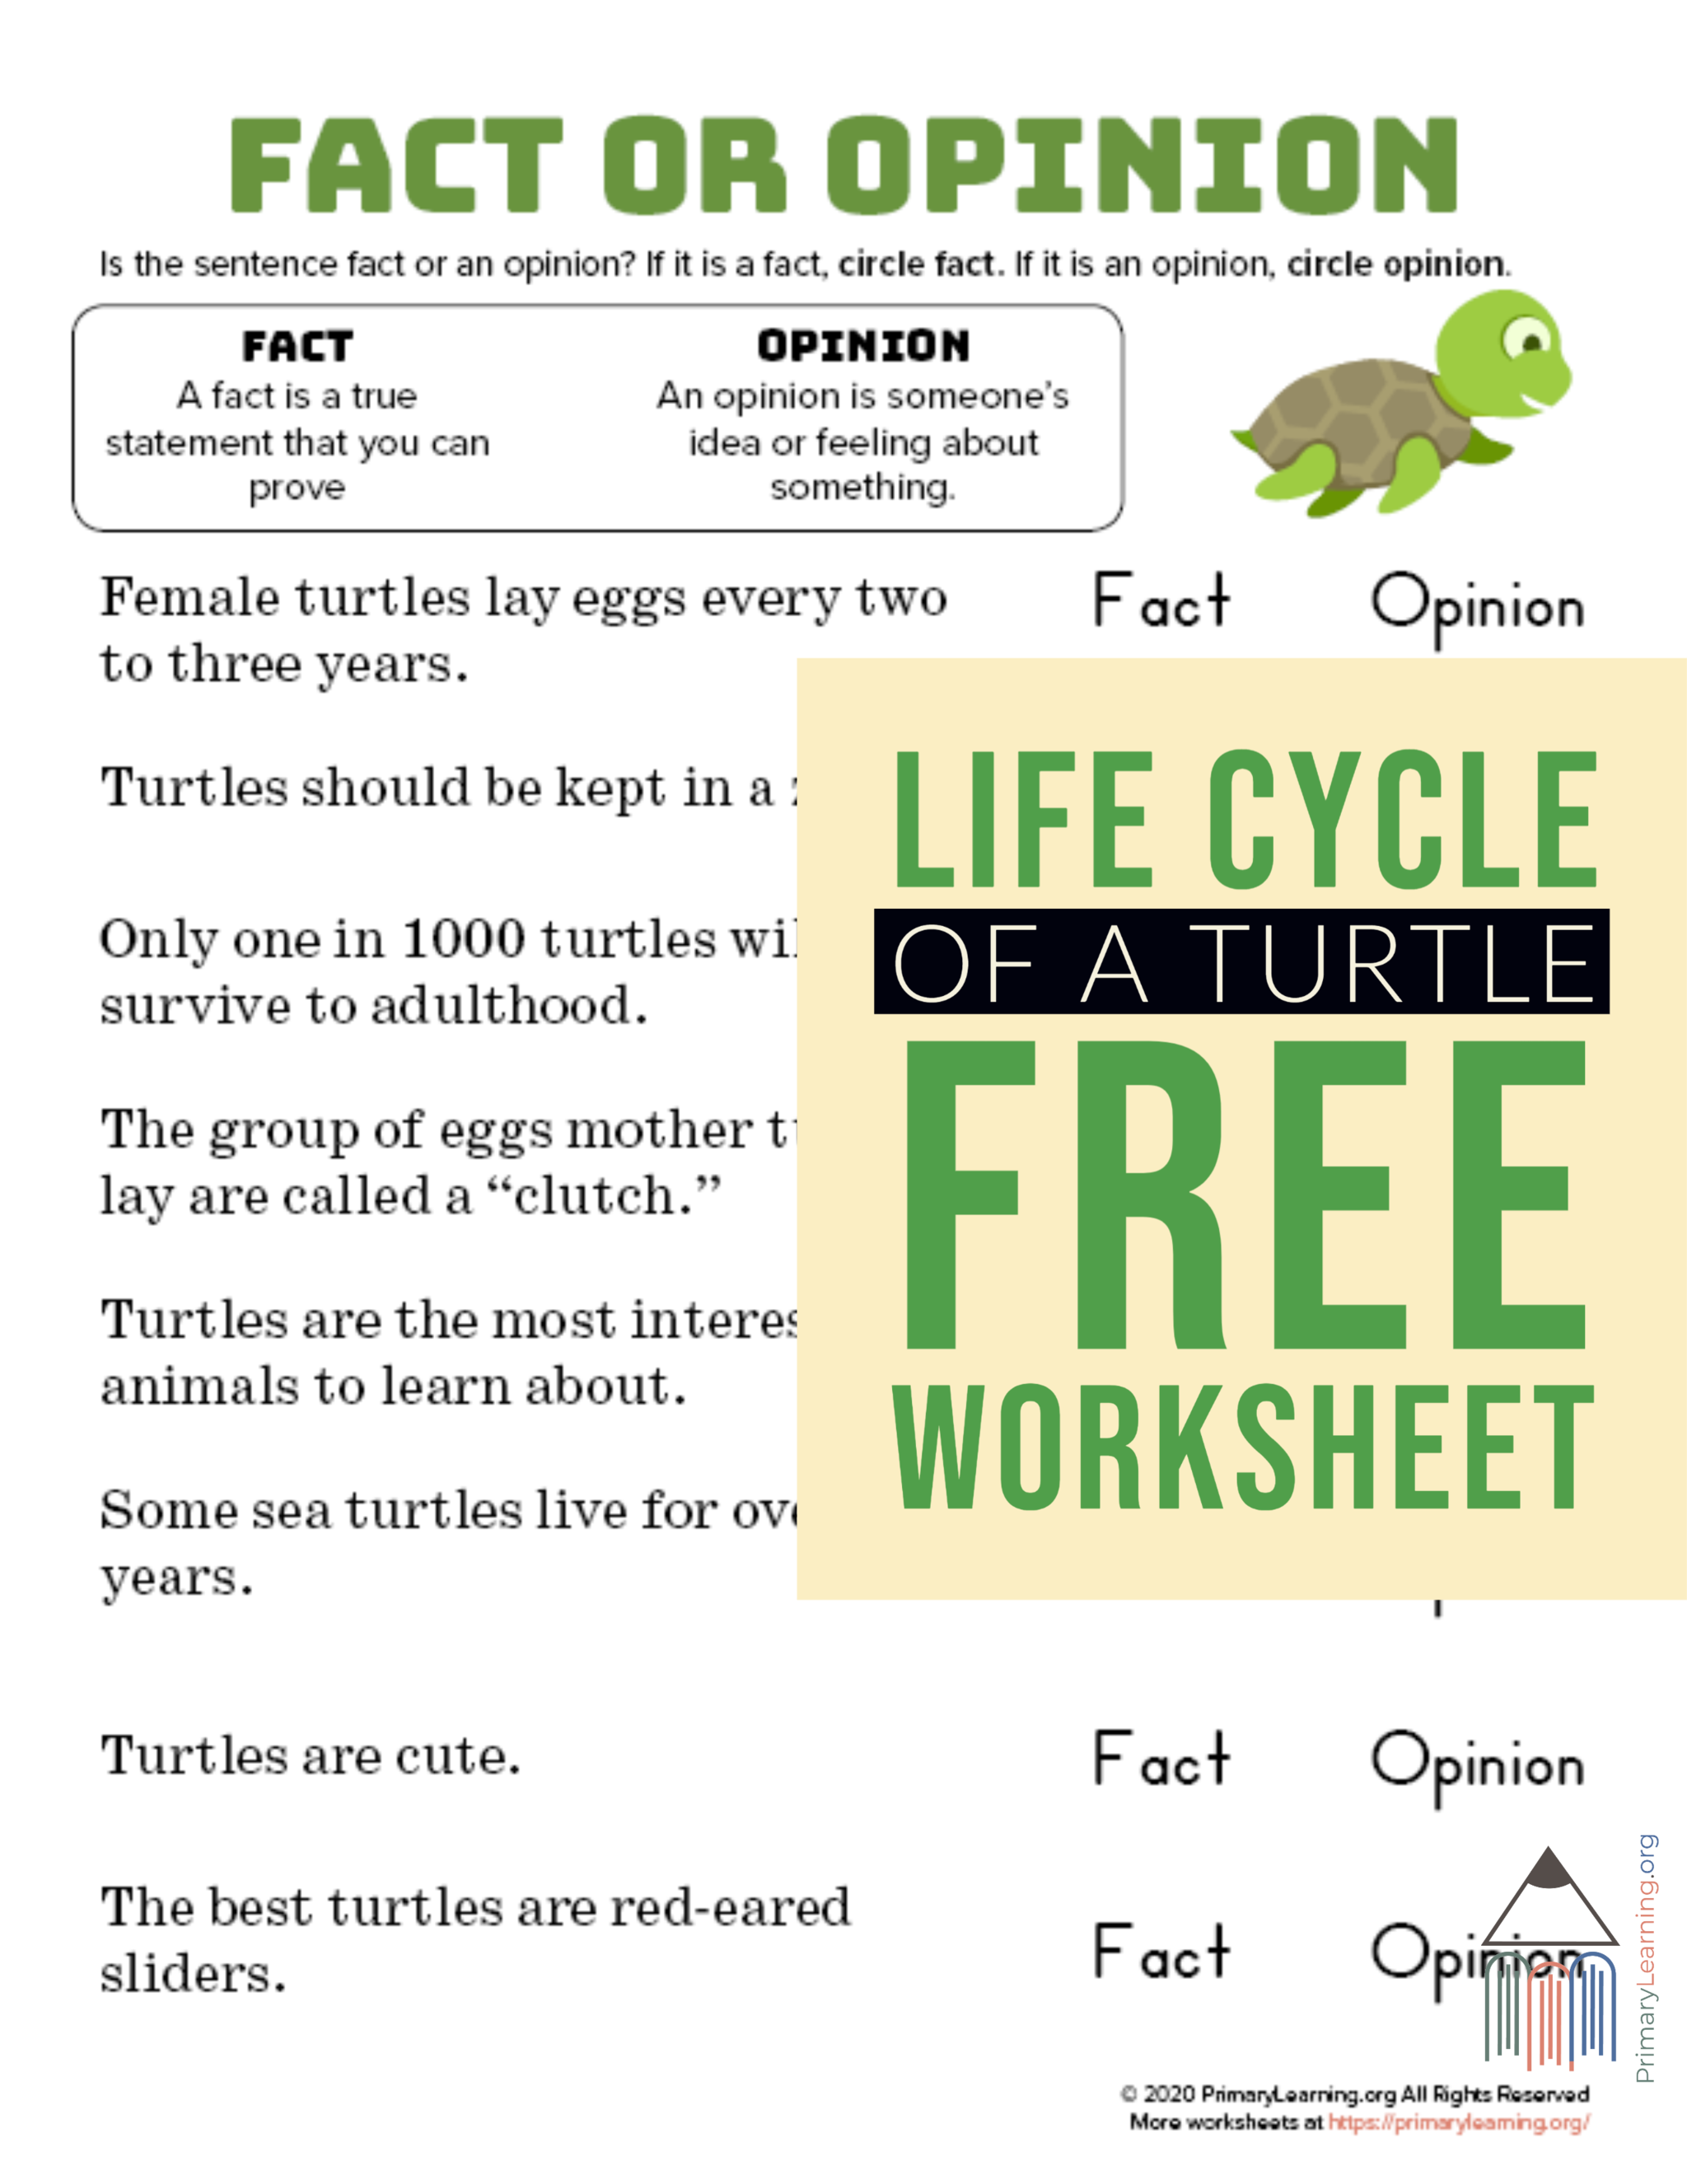 Turtle - Facts and Opinions   PrimaryLearning.org   Fact and opinion [ 2651 x 2048 Pixel ]